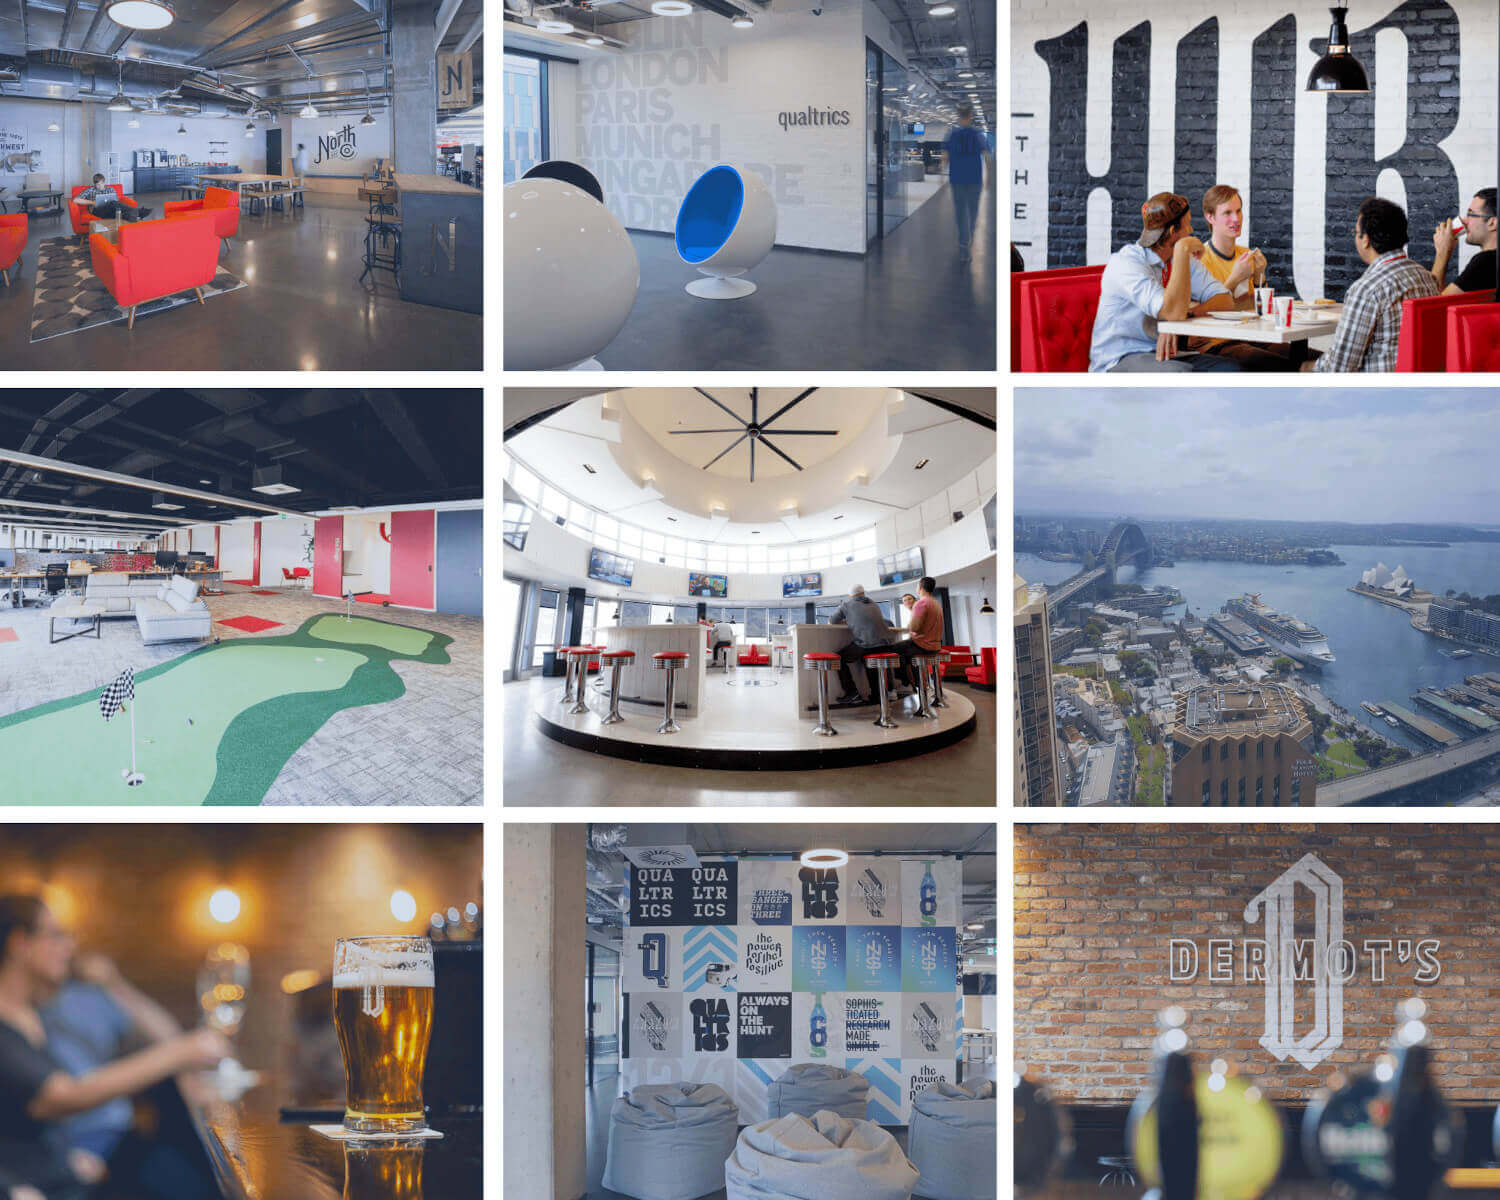 Qualtrics office spaces